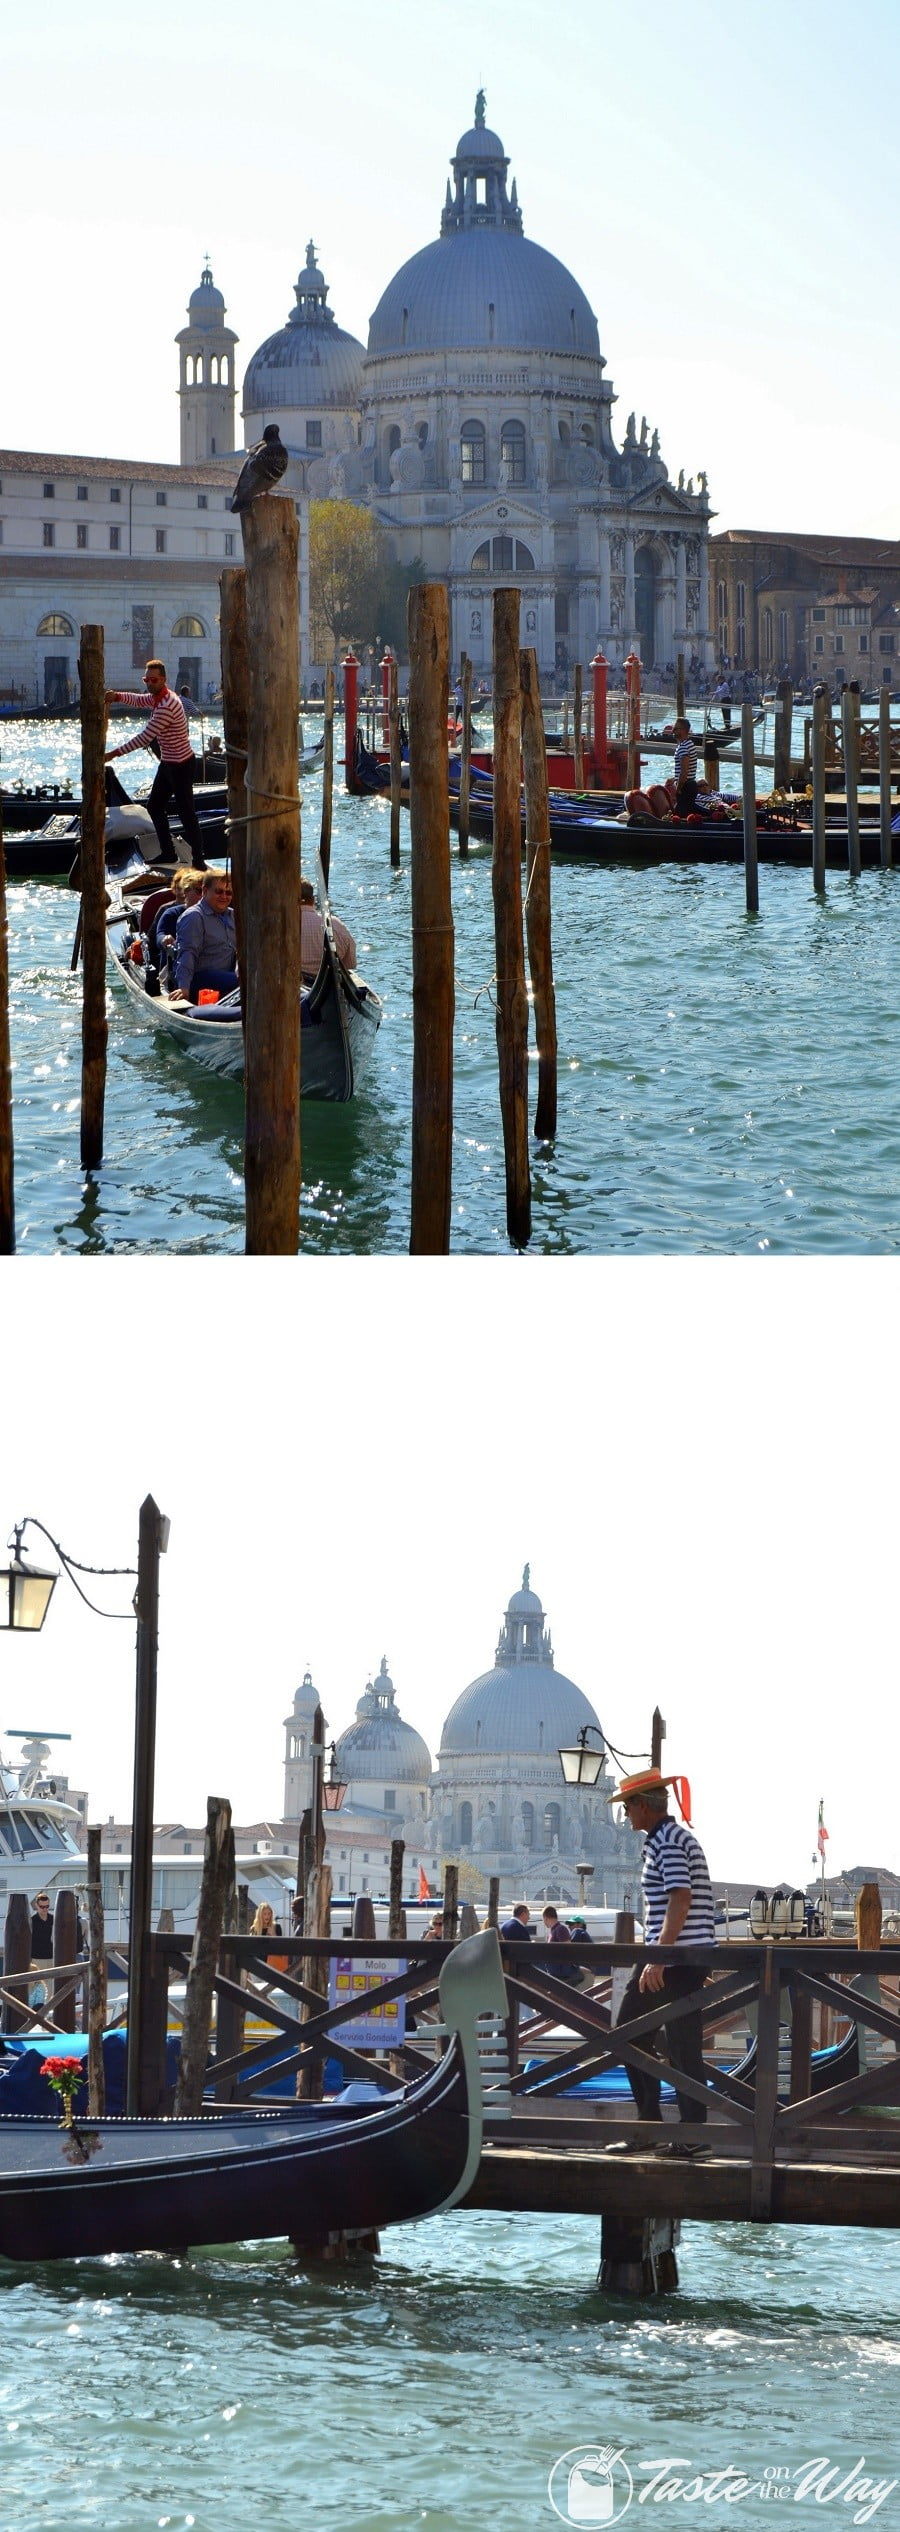 Check out these awesome pictures of Basilica di Santa Maria della Salute in #Venice #travel #photography @tasteontheway